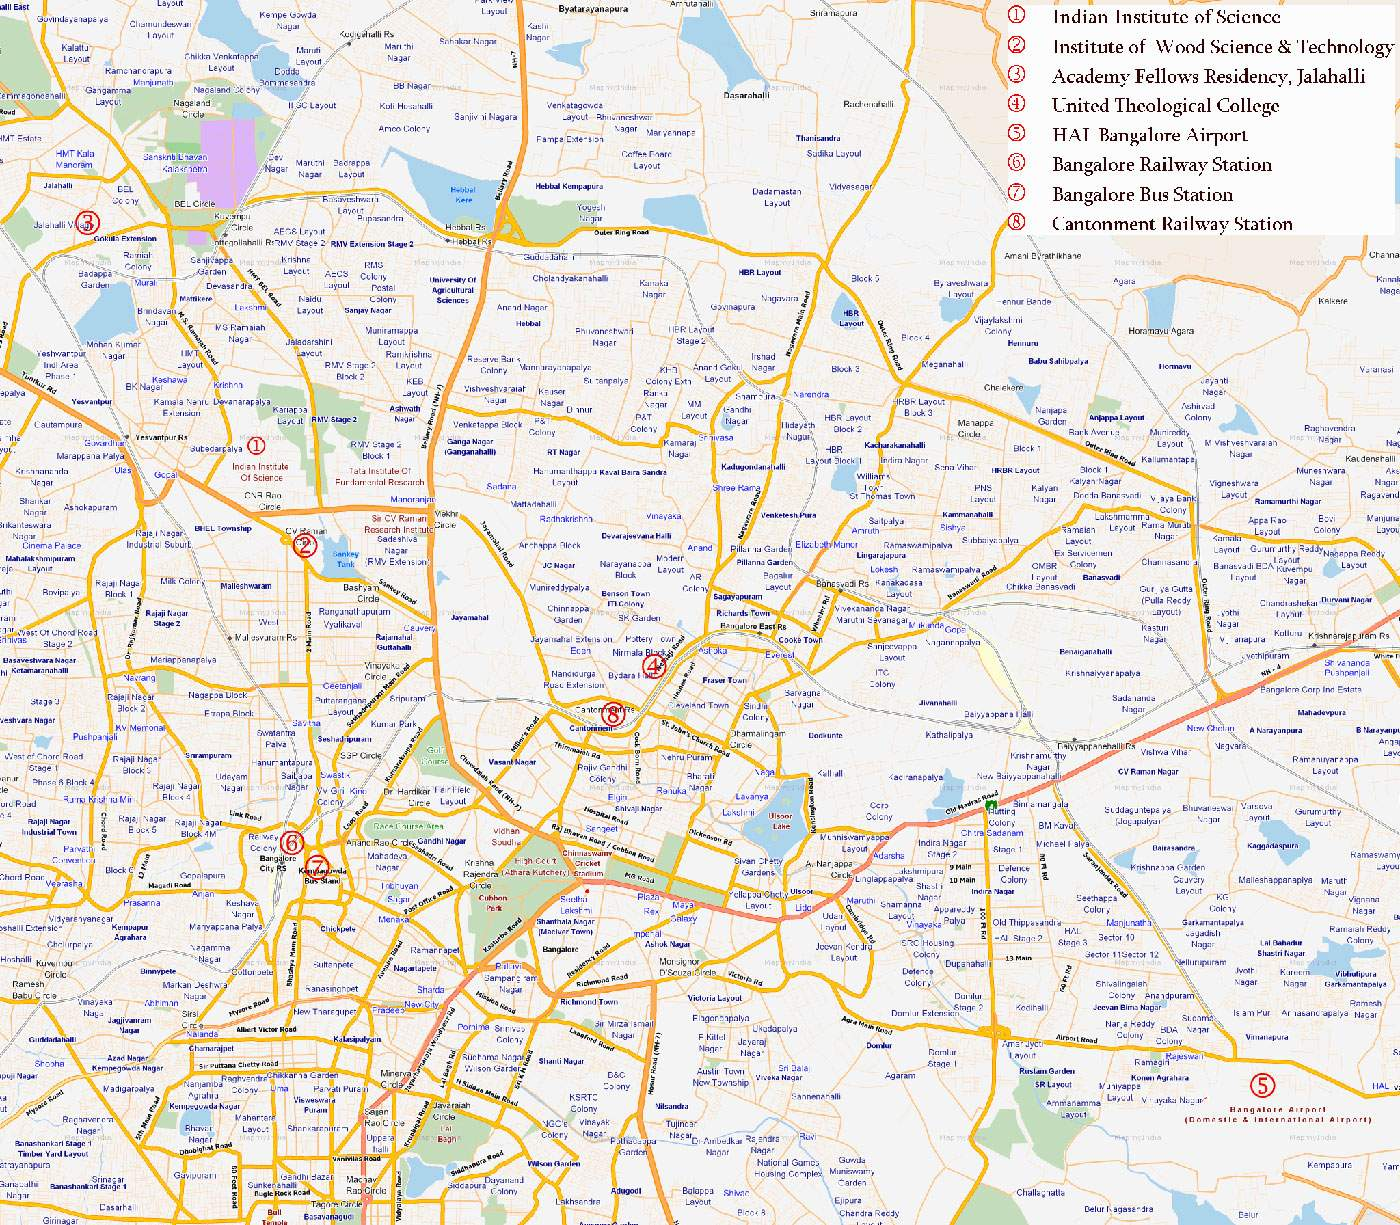 Large bangalore maps for free download and print high resolution large map of bangalore 1 gumiabroncs